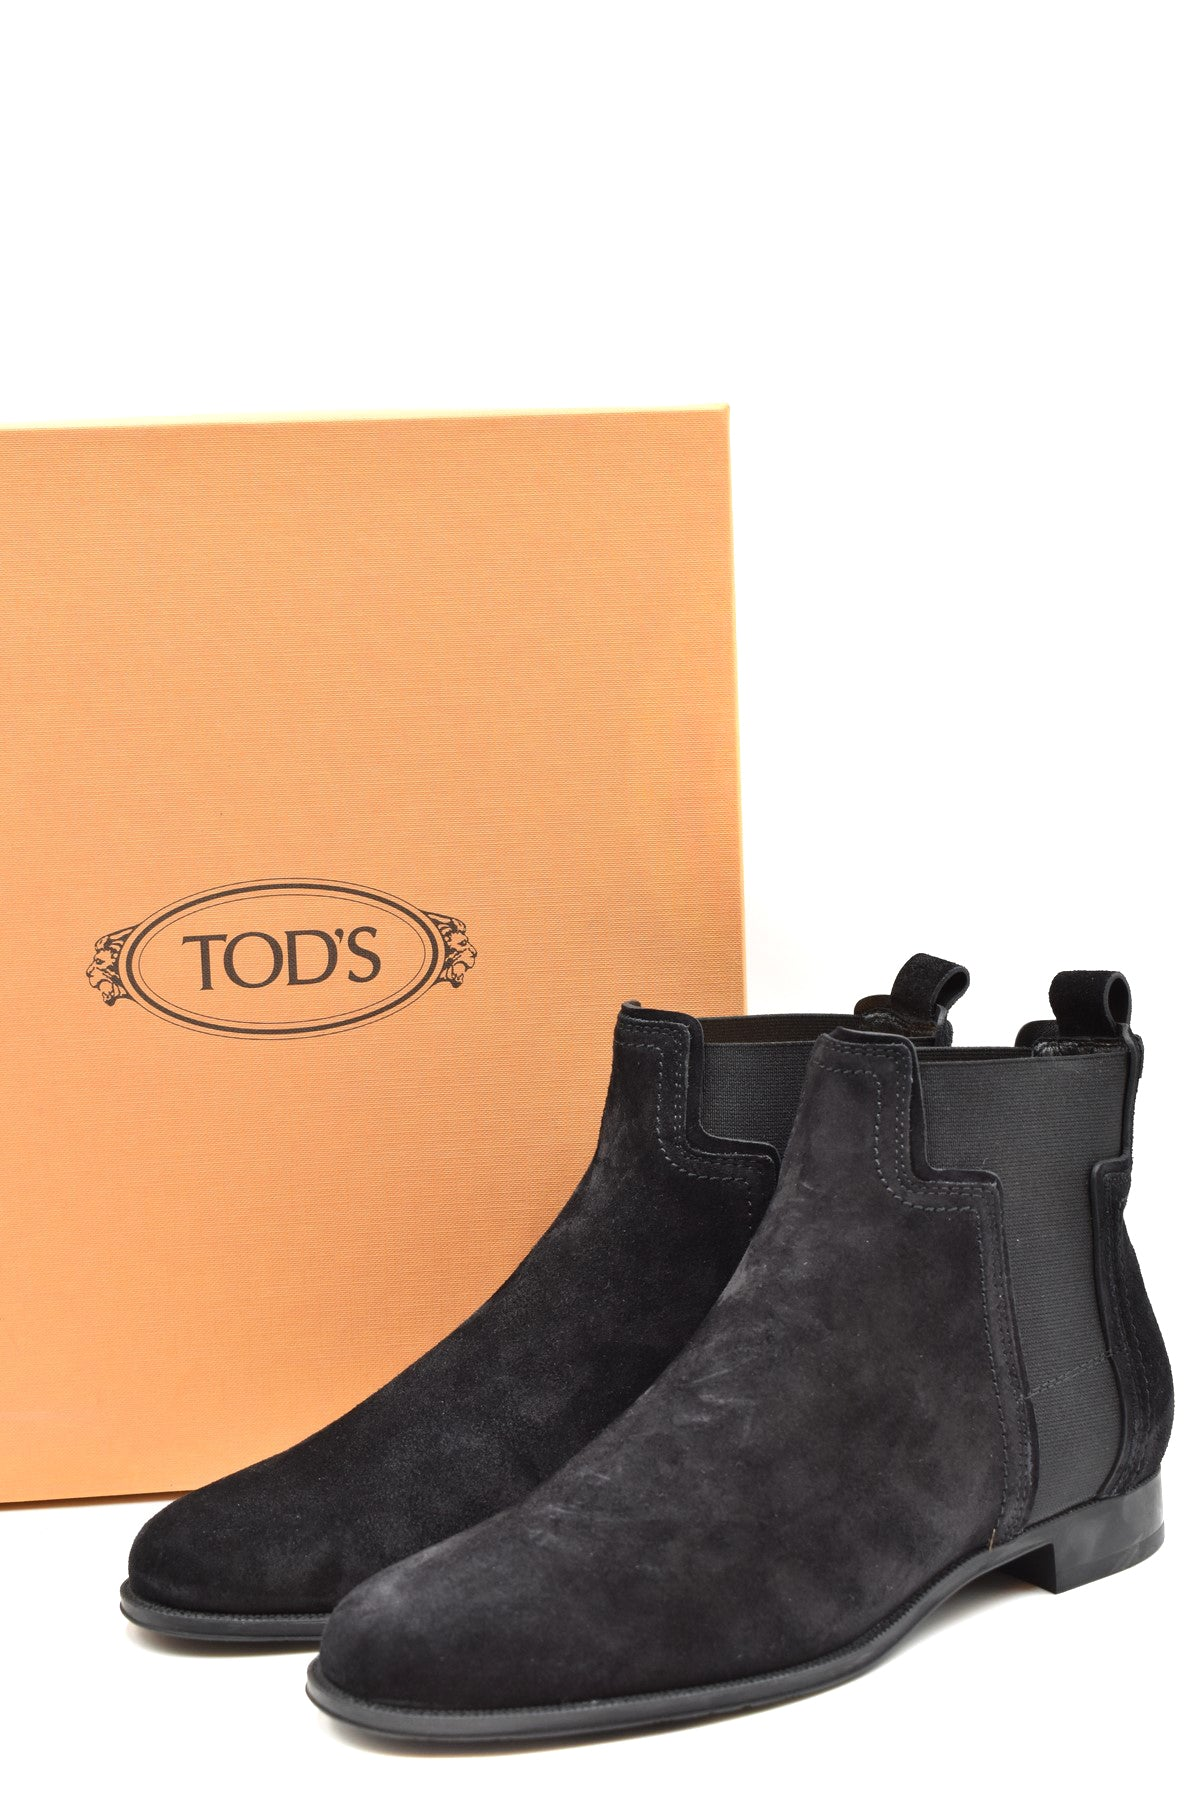 Shoes Tod'S-Women's Fashion - Women's Shoes - Women's Boots-Product Details Terms: New With LabelMain Color: BlackType Of Accessory: BootsSeason: Fall / WinterMade In: ItalyGender: WomanHeel'S Height: 2Size: EuComposition: Chamois 100%Year: 2019Manufacturer Part Number: Xxw73B0Br70Byeb999-Keyomi-Sook